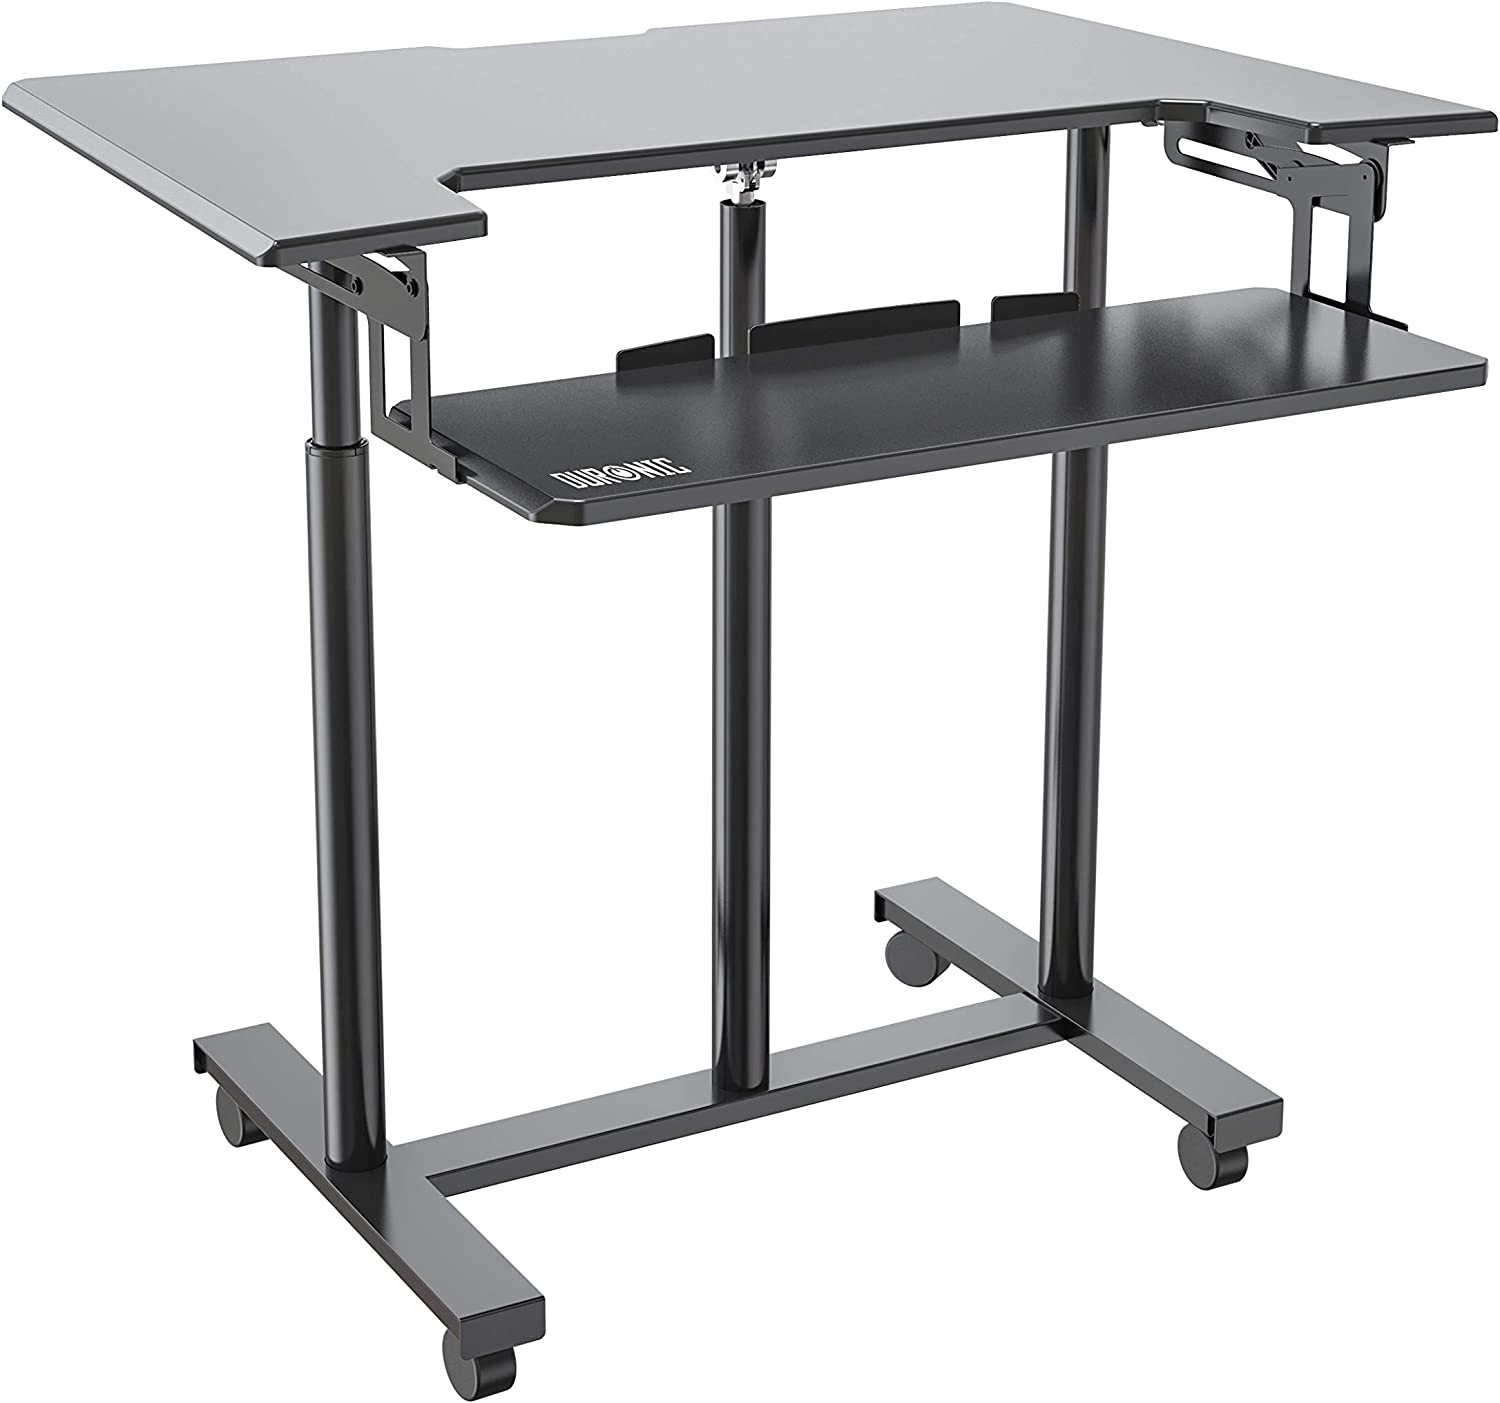 Duronic Sit-Stand Trolley Desk DM03ST1 | Standing Portable PC Workstation | Computer Monitor and Laptop Platform with Keyboard Tray | Height Adjustable | Compatible Monitor Arms